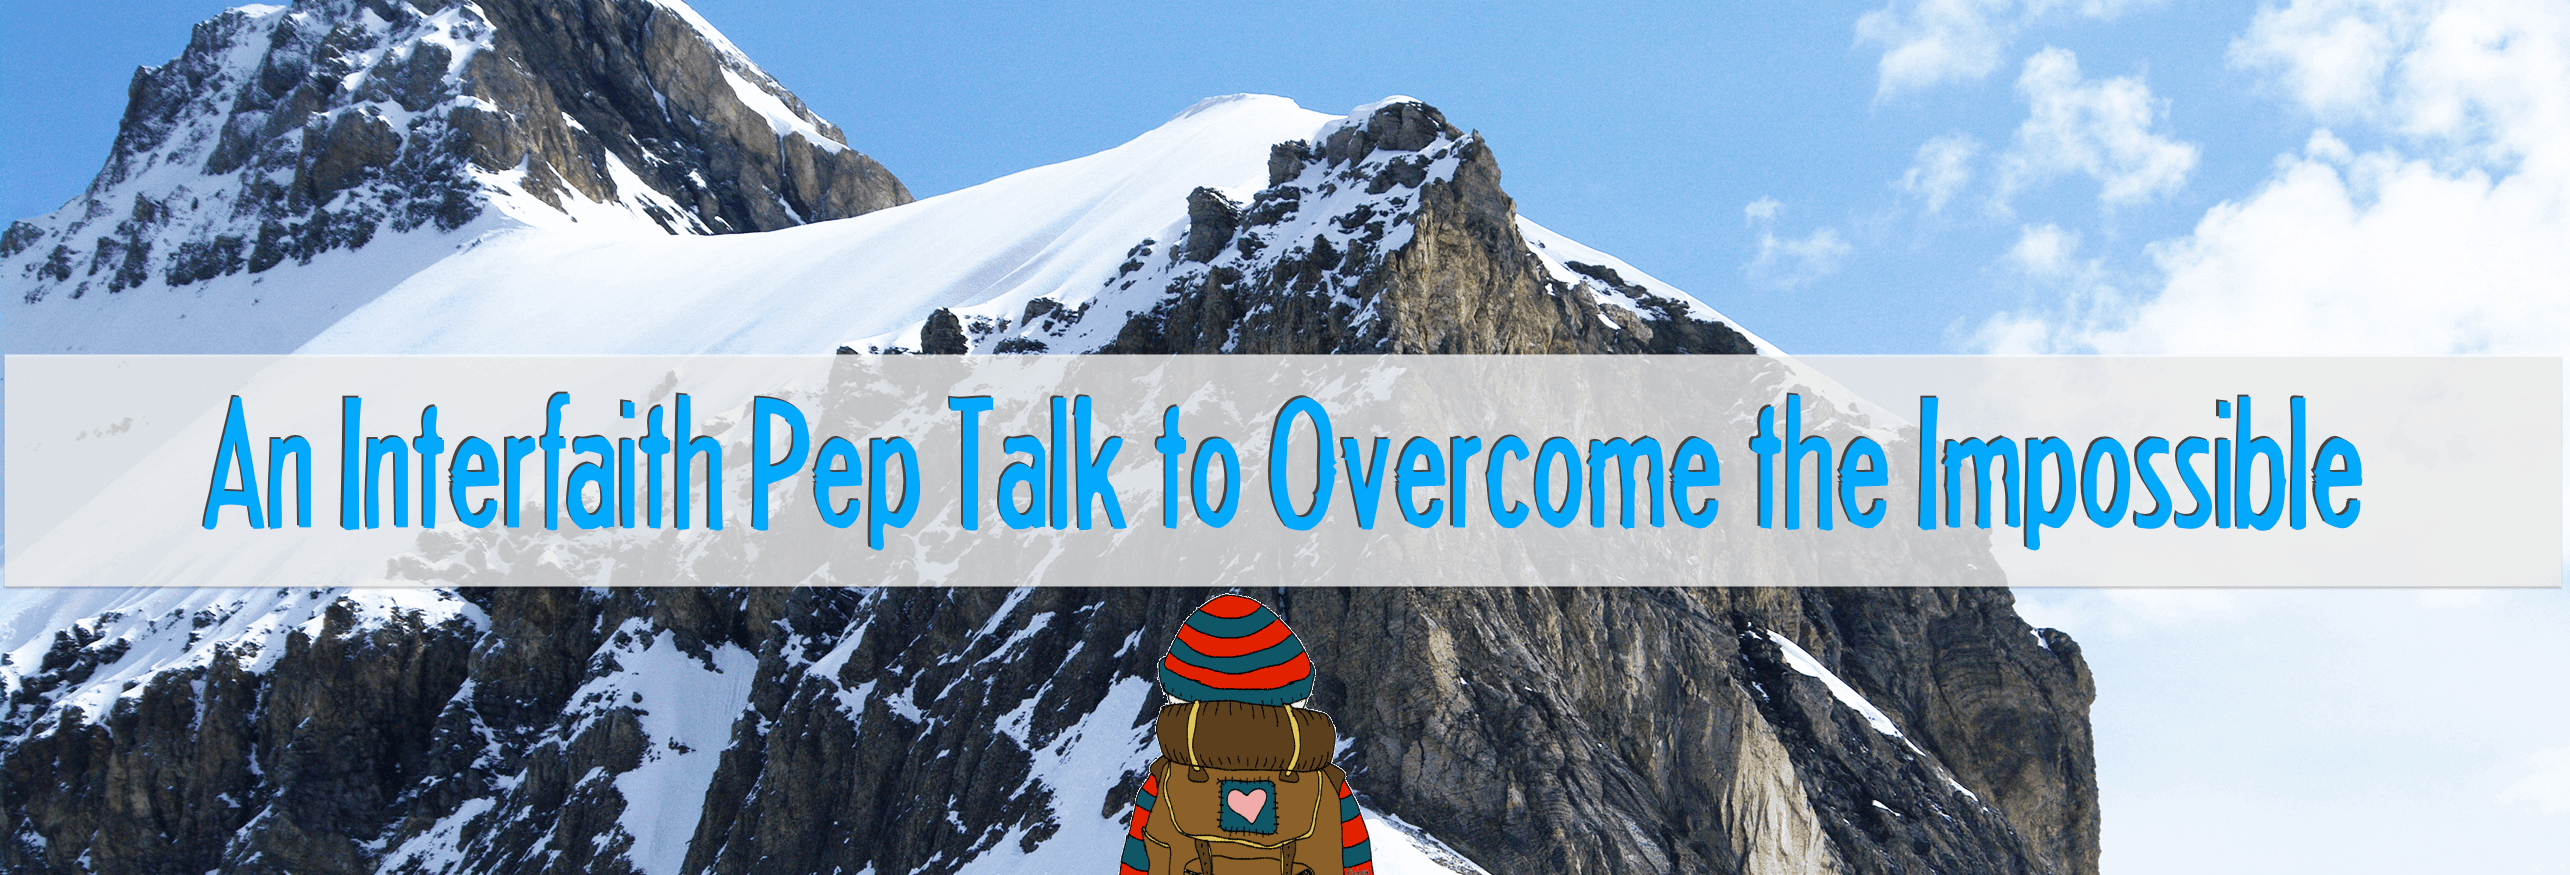 An Interfaith Pep Talk to Overcome the Impossible